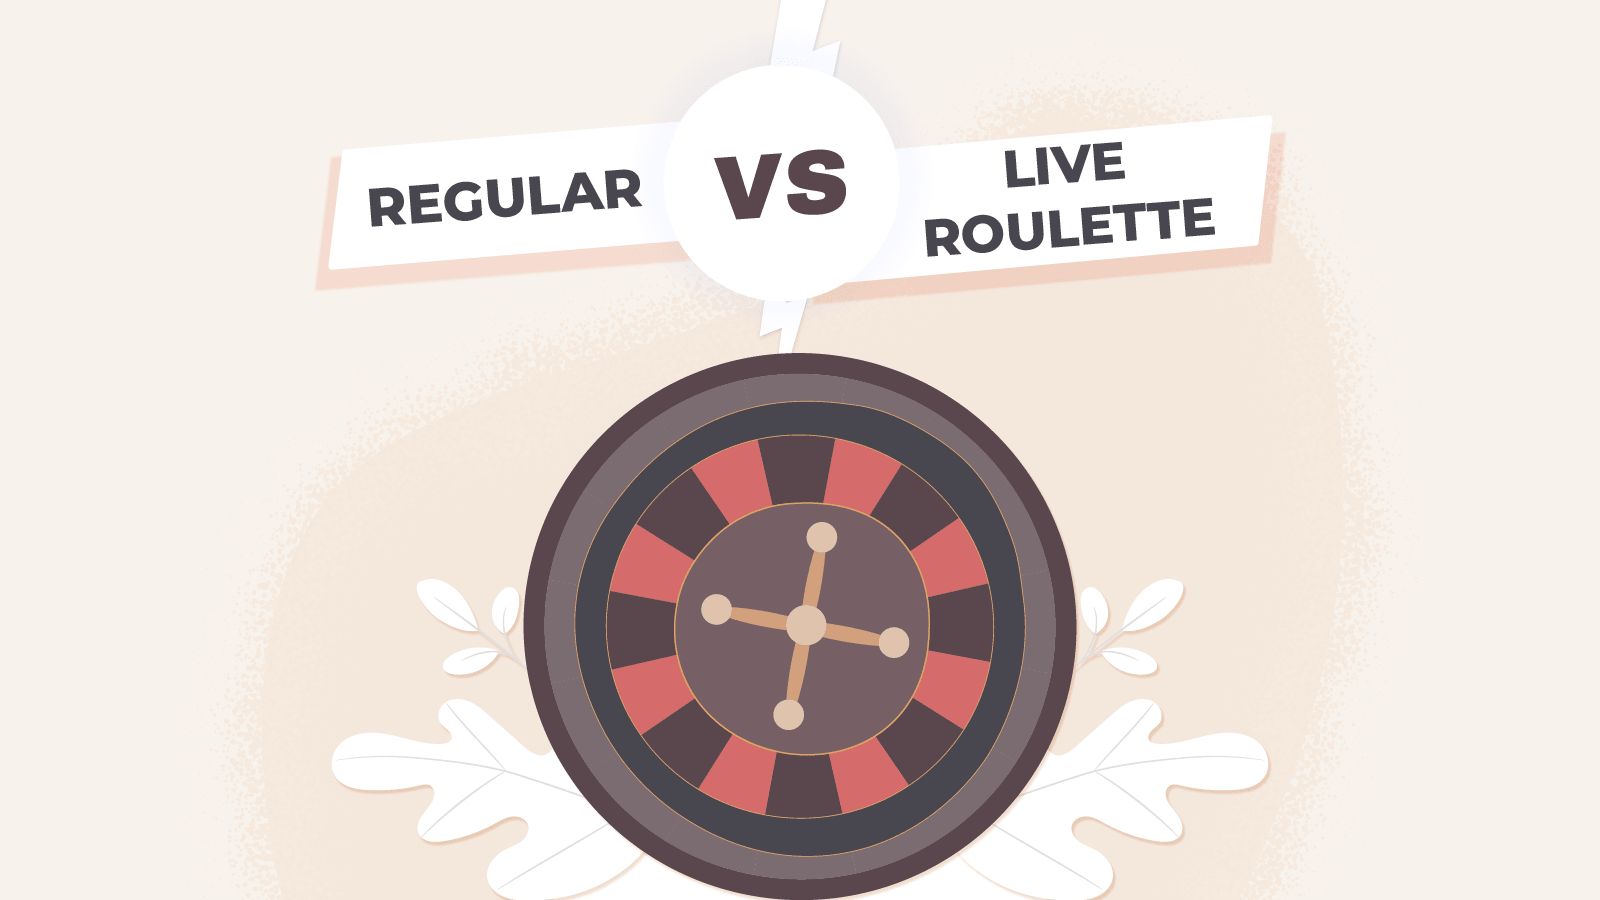 Live vs regular Which one is better